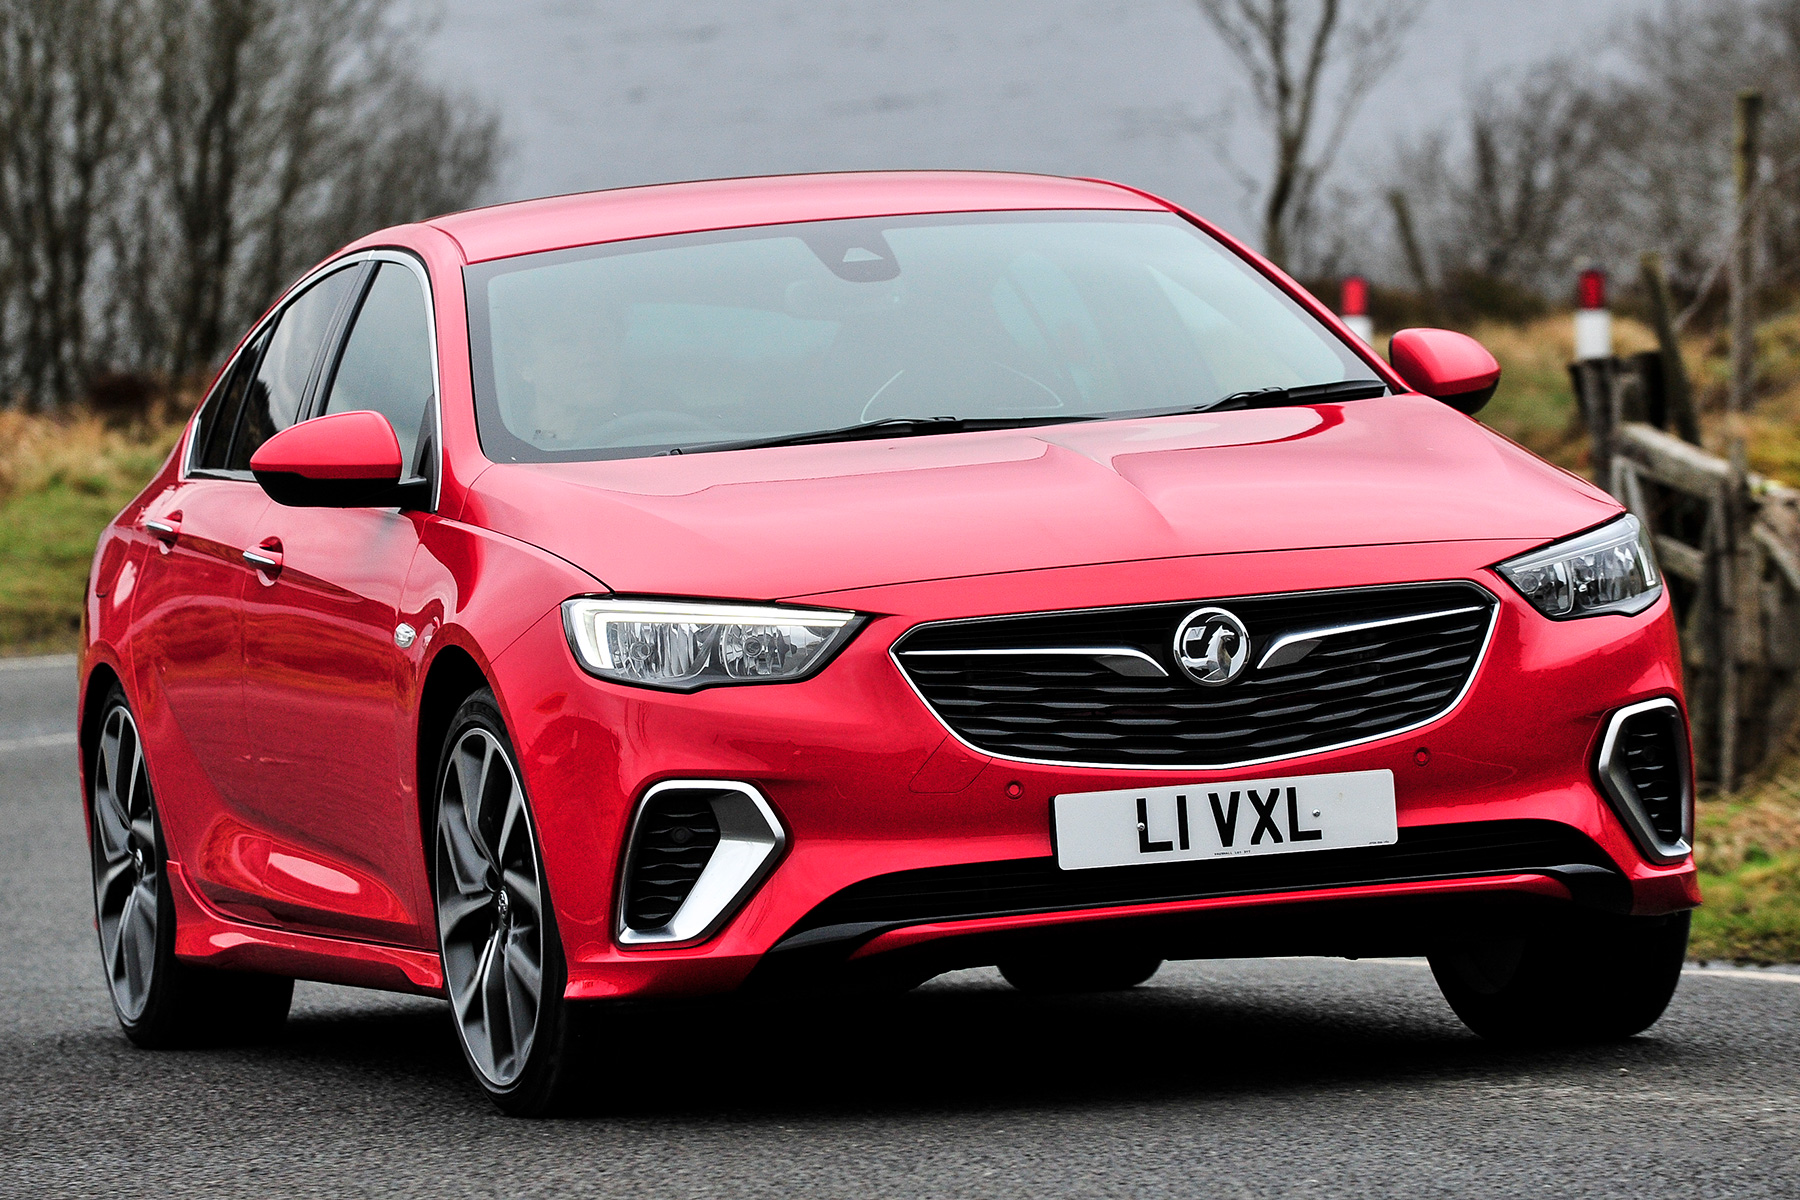 2018 vauxhall insignia gsi first drive fun forerunner to vxr. Black Bedroom Furniture Sets. Home Design Ideas